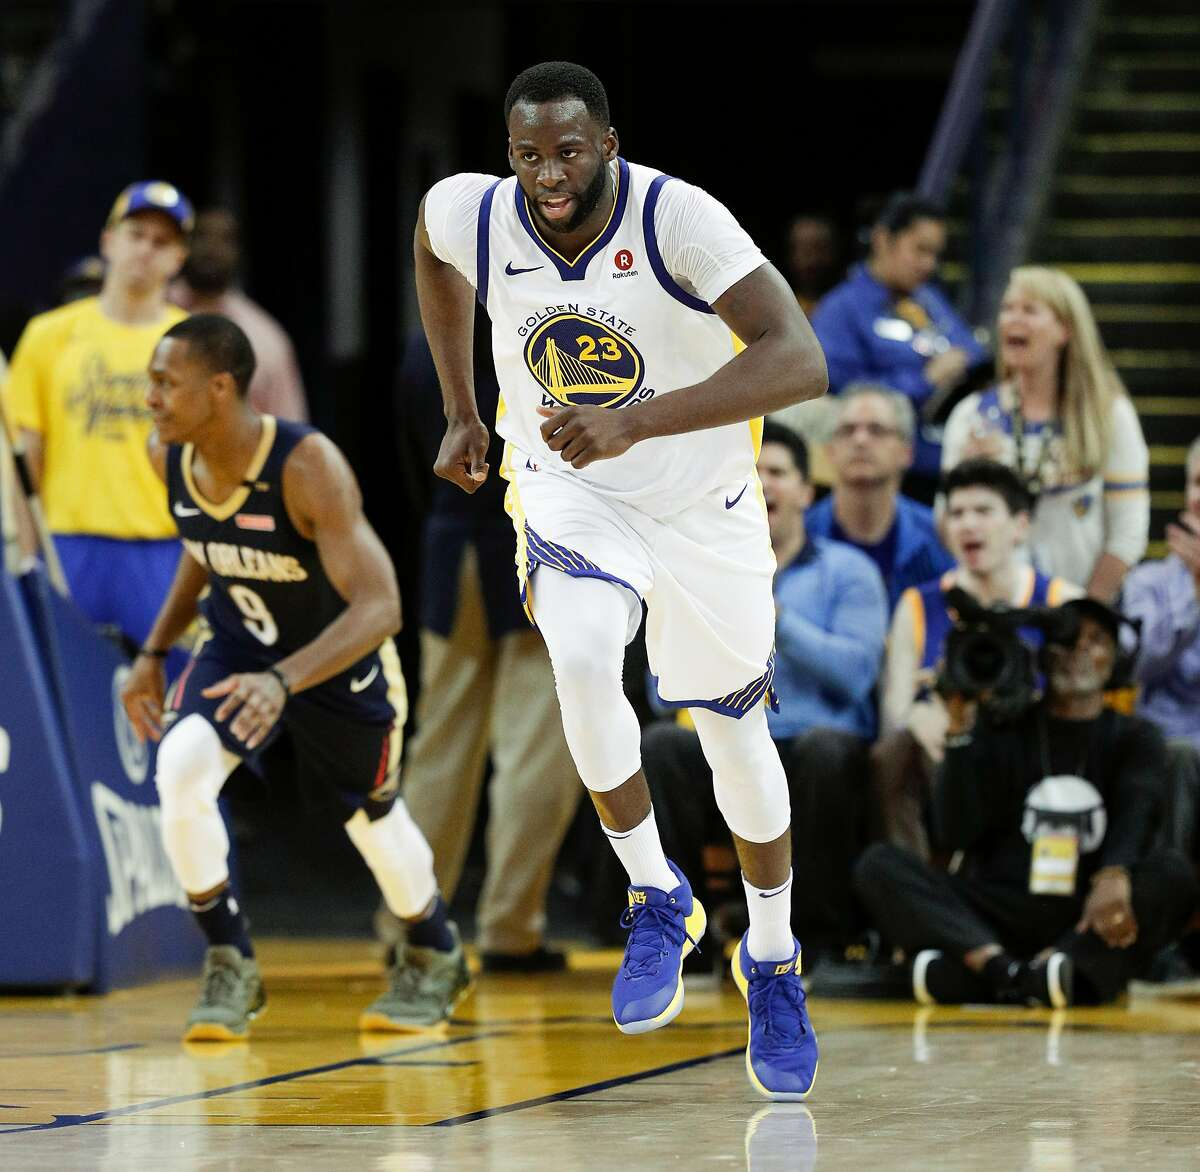 Golden State Warriors' Draymond Green runs up court in the third quarter during game 1 of round 2 of the Western Conference Finals between the Golden State Warriors and the New Orleans Pelicans at Oracle Arena on Saturday, April 28, 2018 in Oakland, Calif.